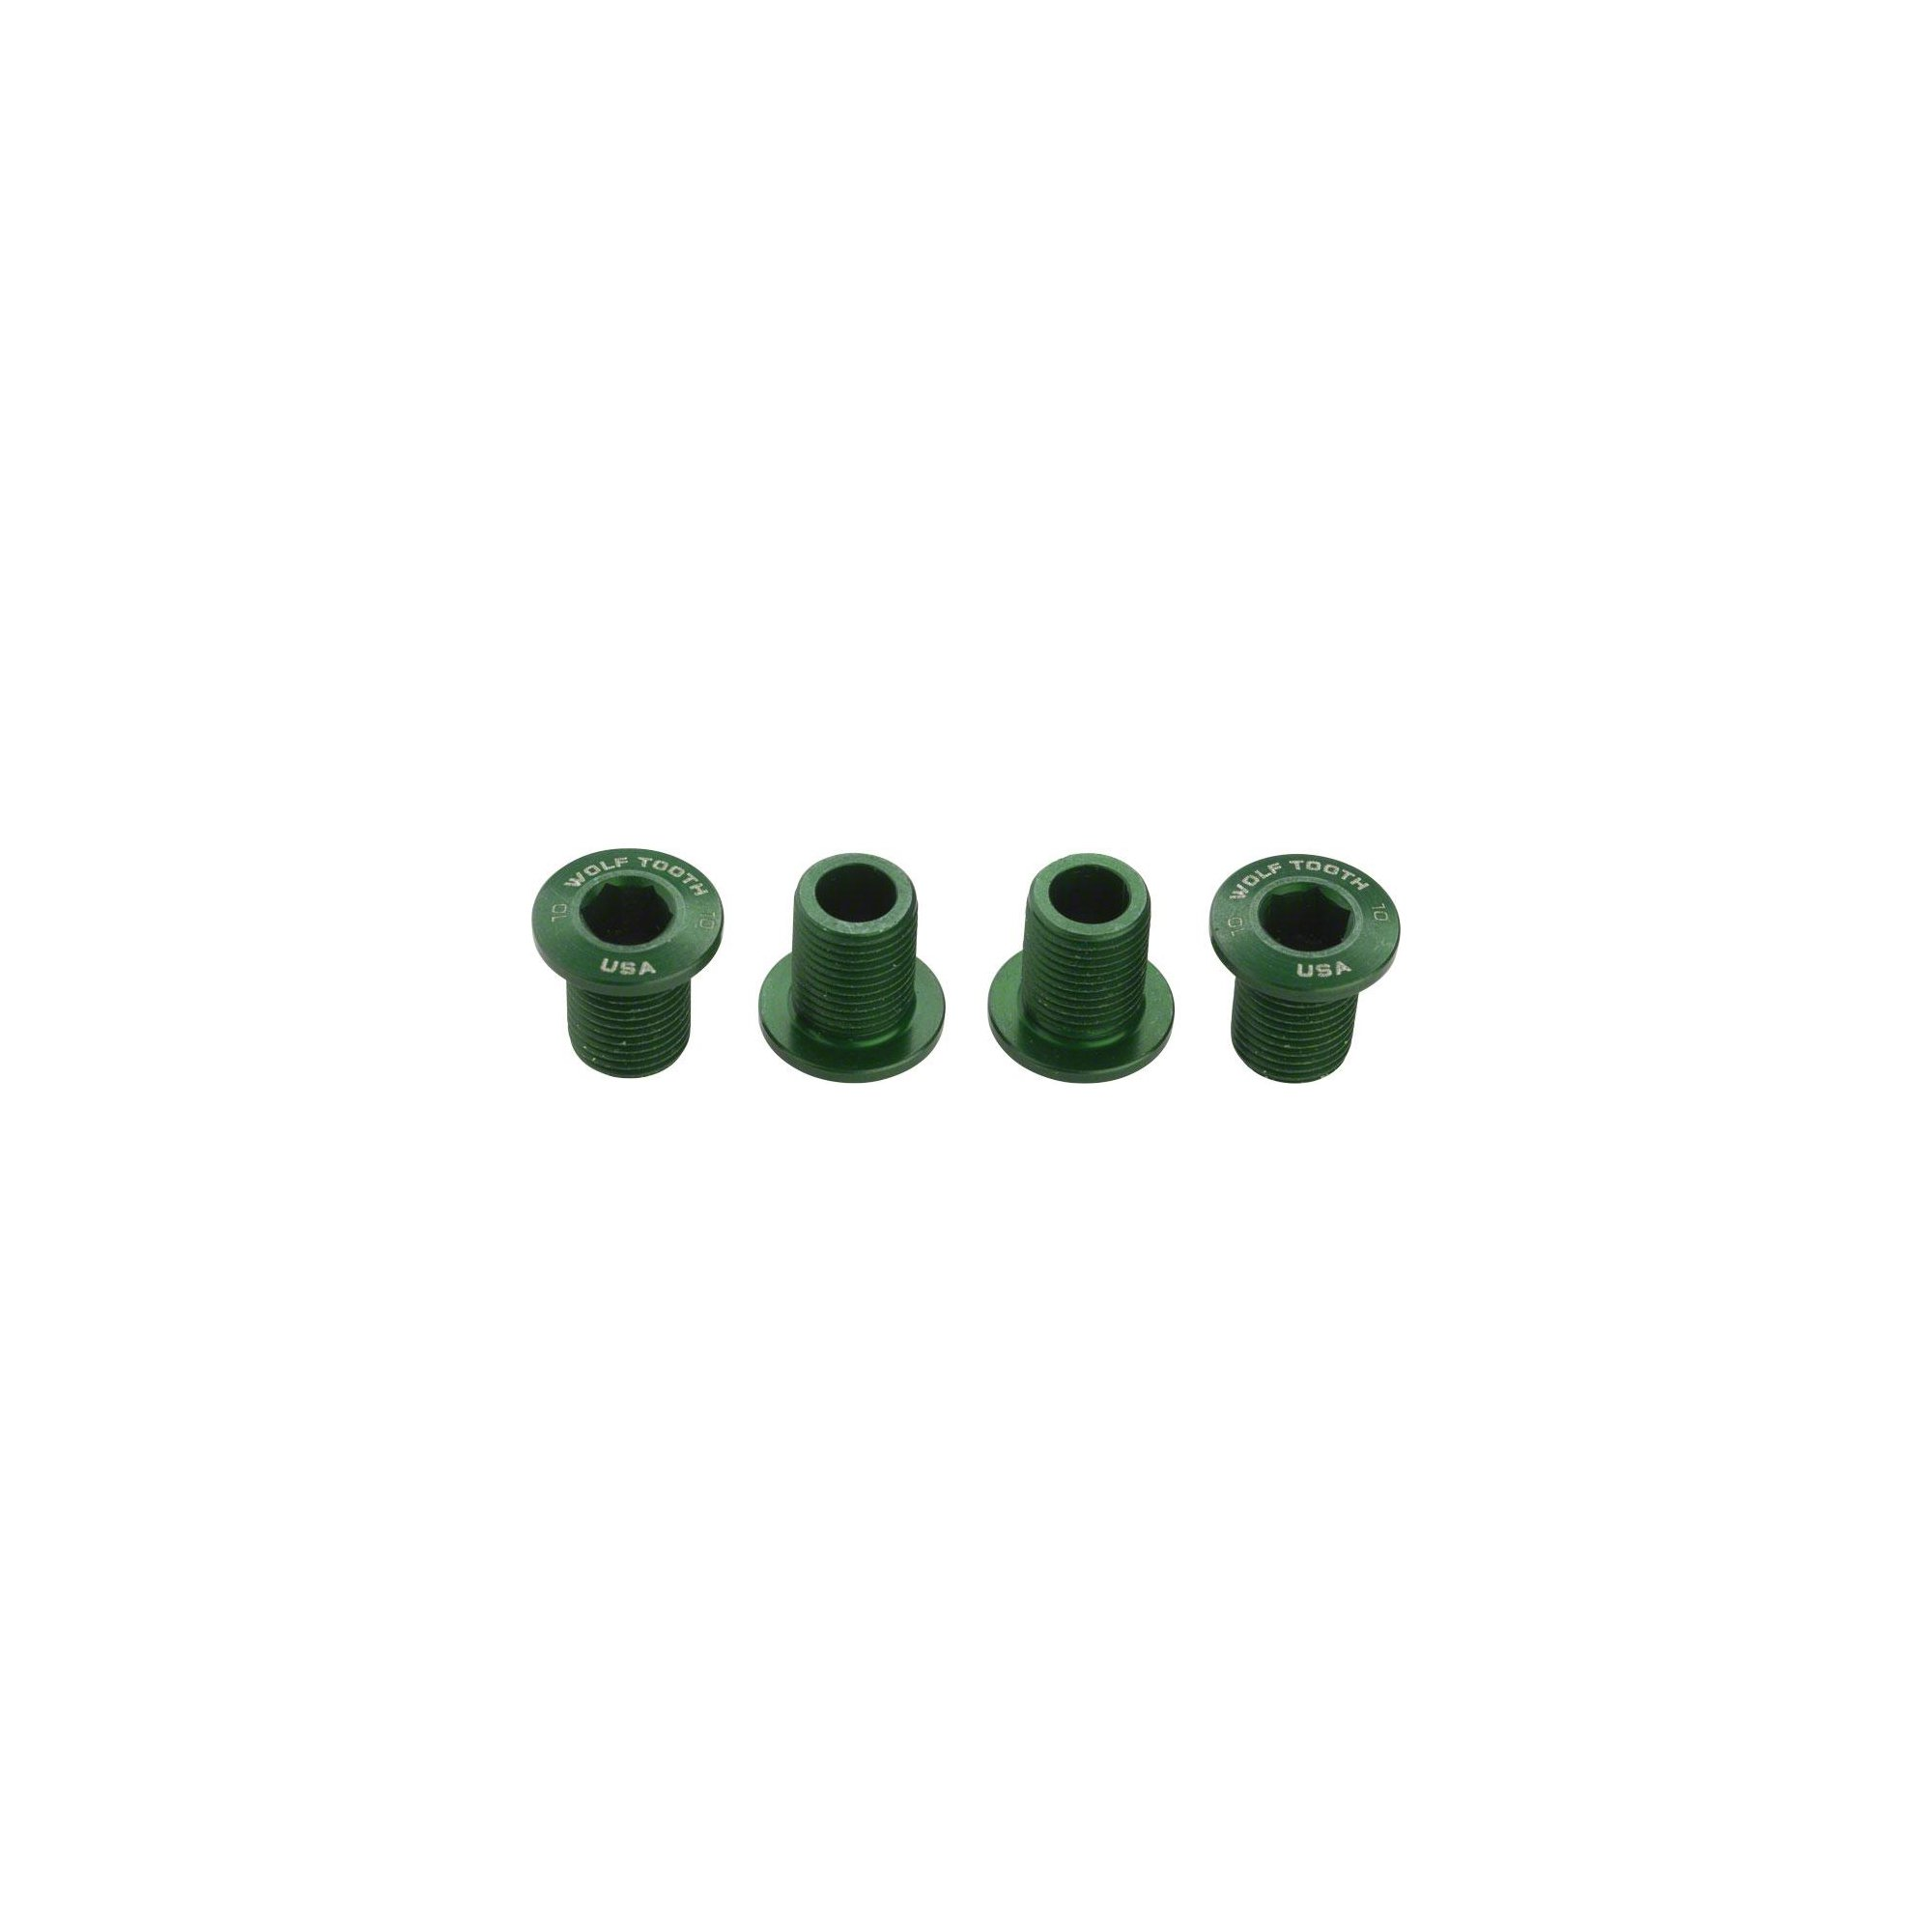 Wolf Tooth Components Set of Chainring Bolts 104 x 30T Rings (10 mm Long) Green by Wolf Tooth Components